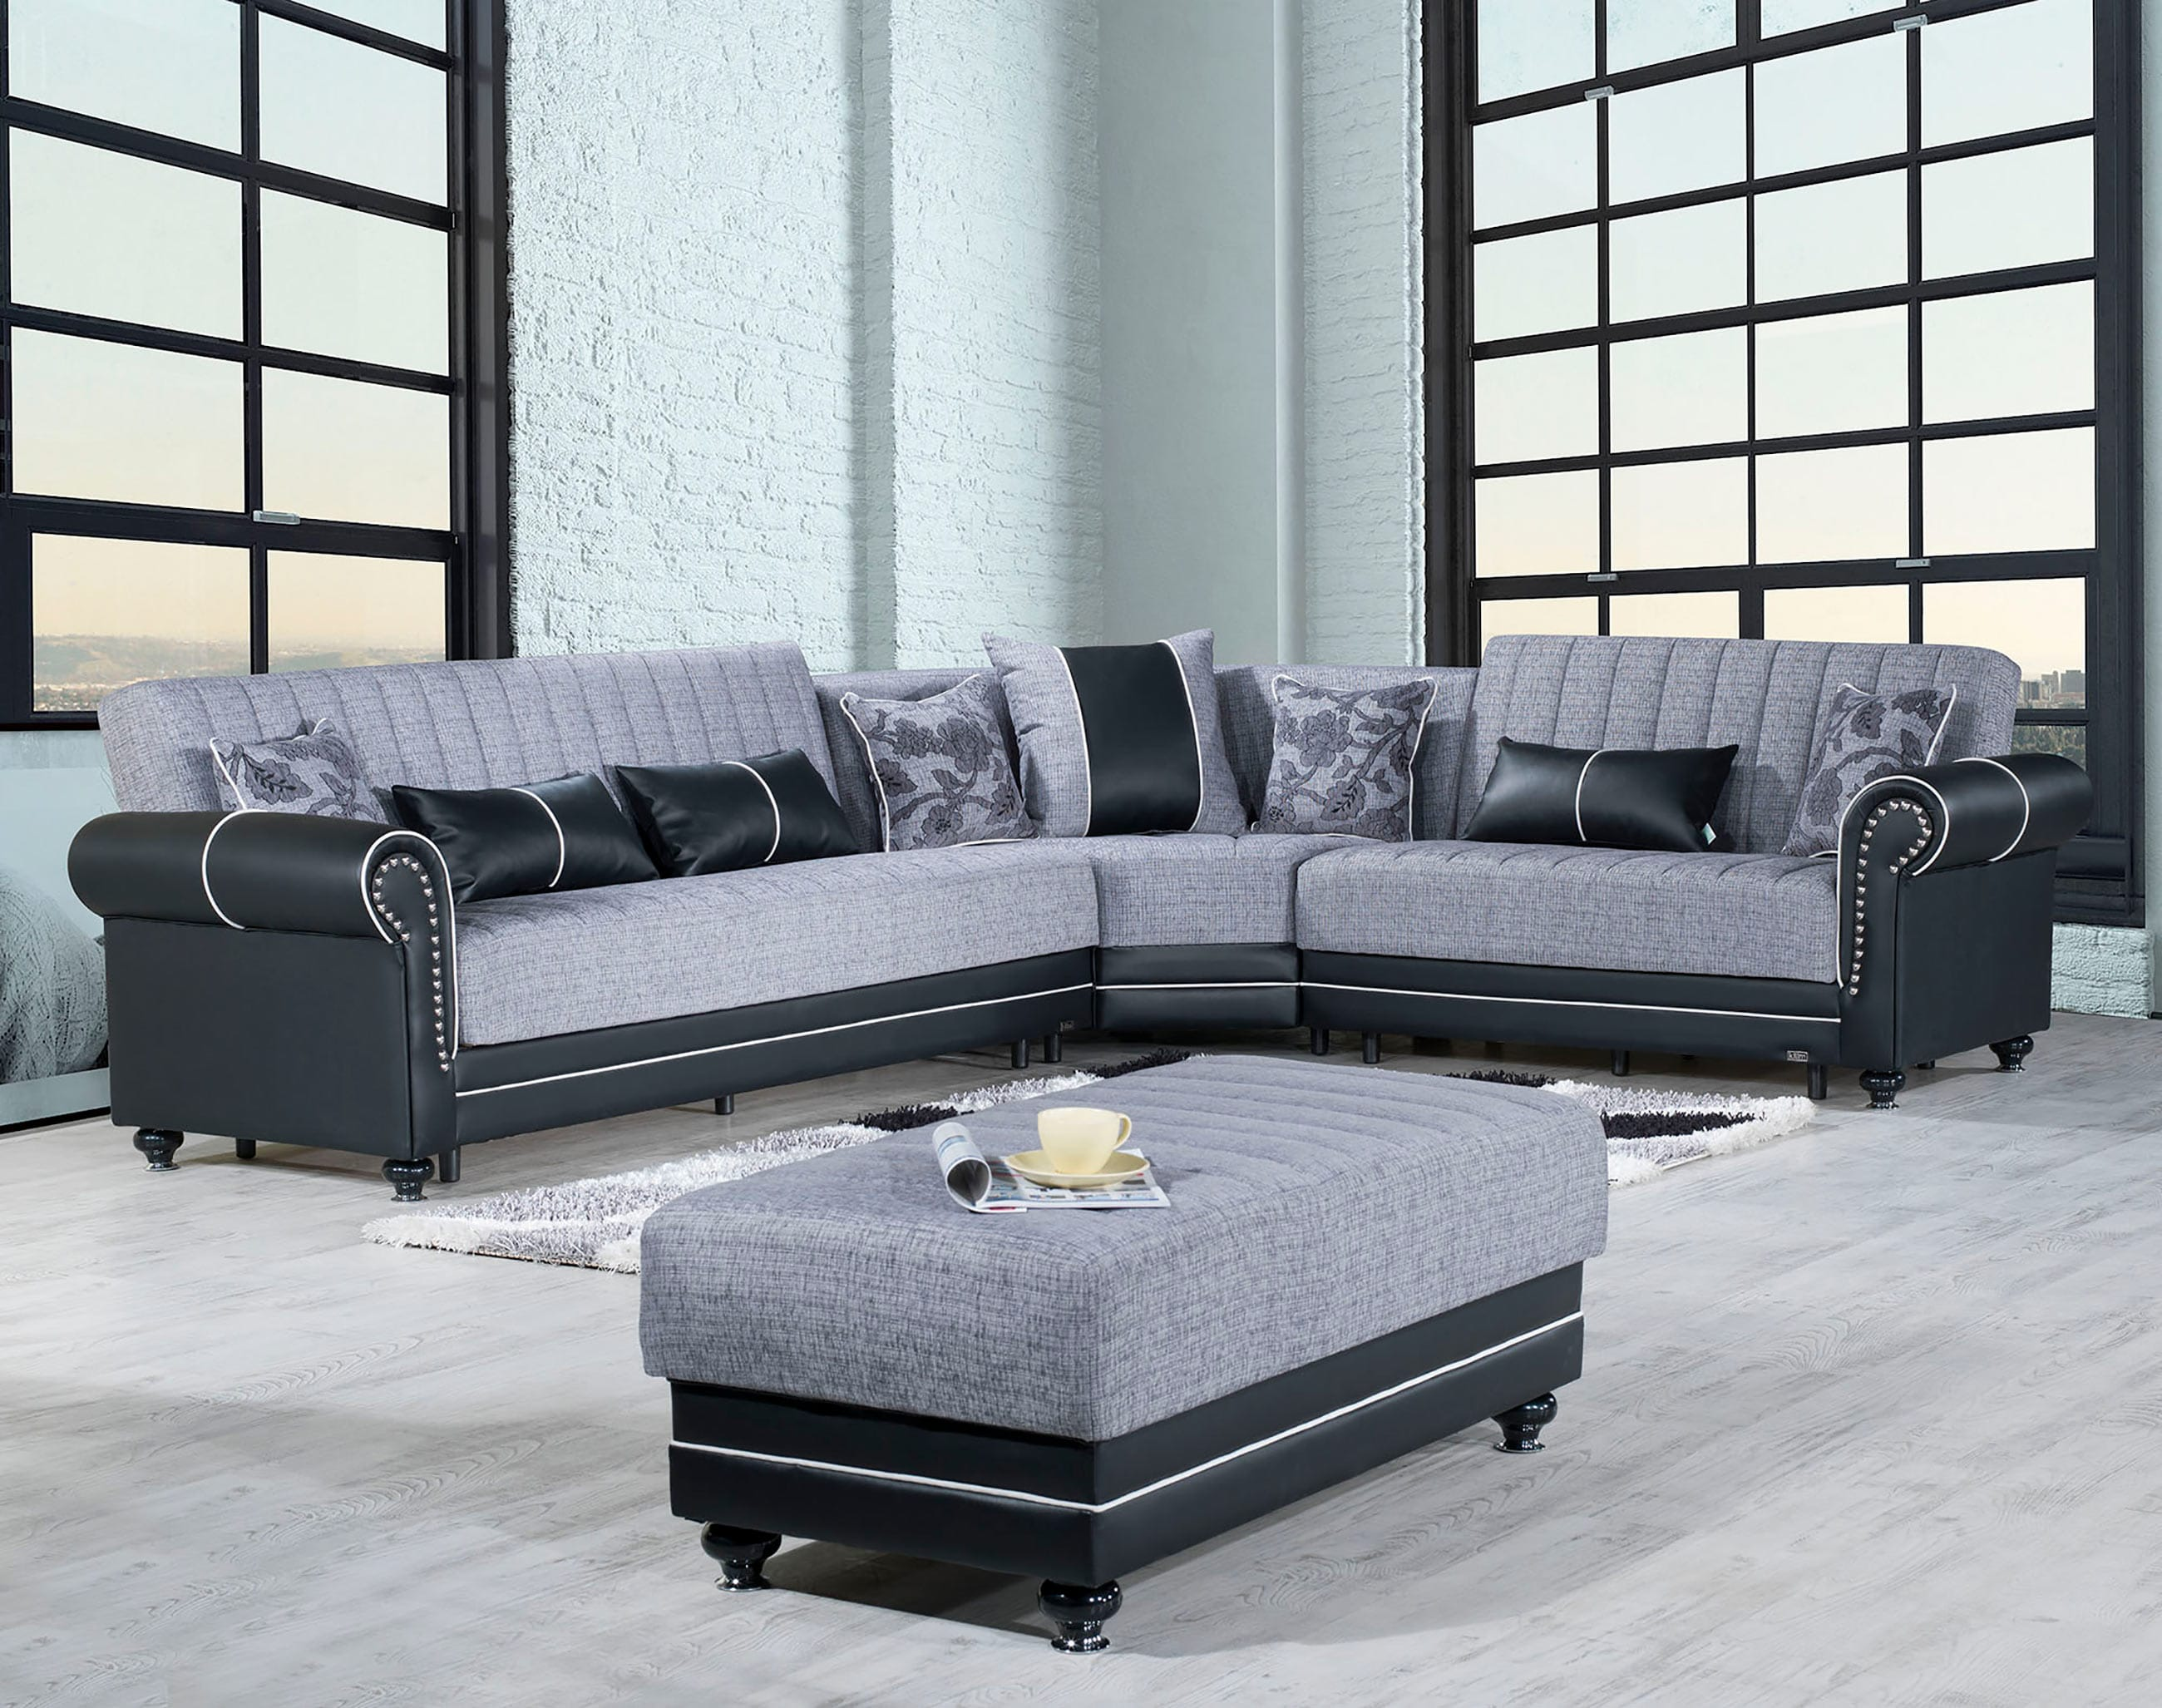 Royal Home Quantro Gray Convertible Sectional by Casamode